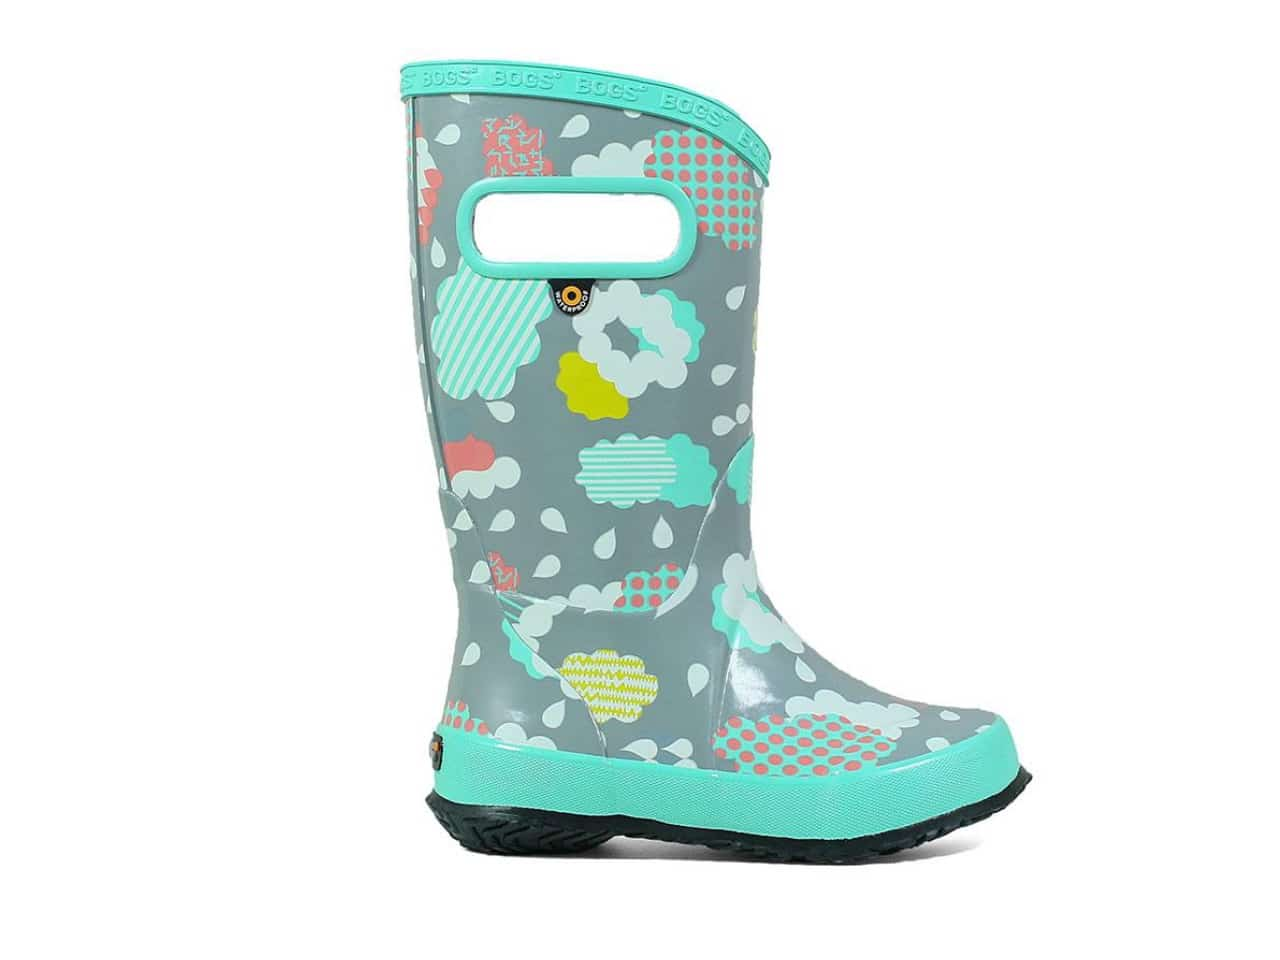 grey and teal rain boots